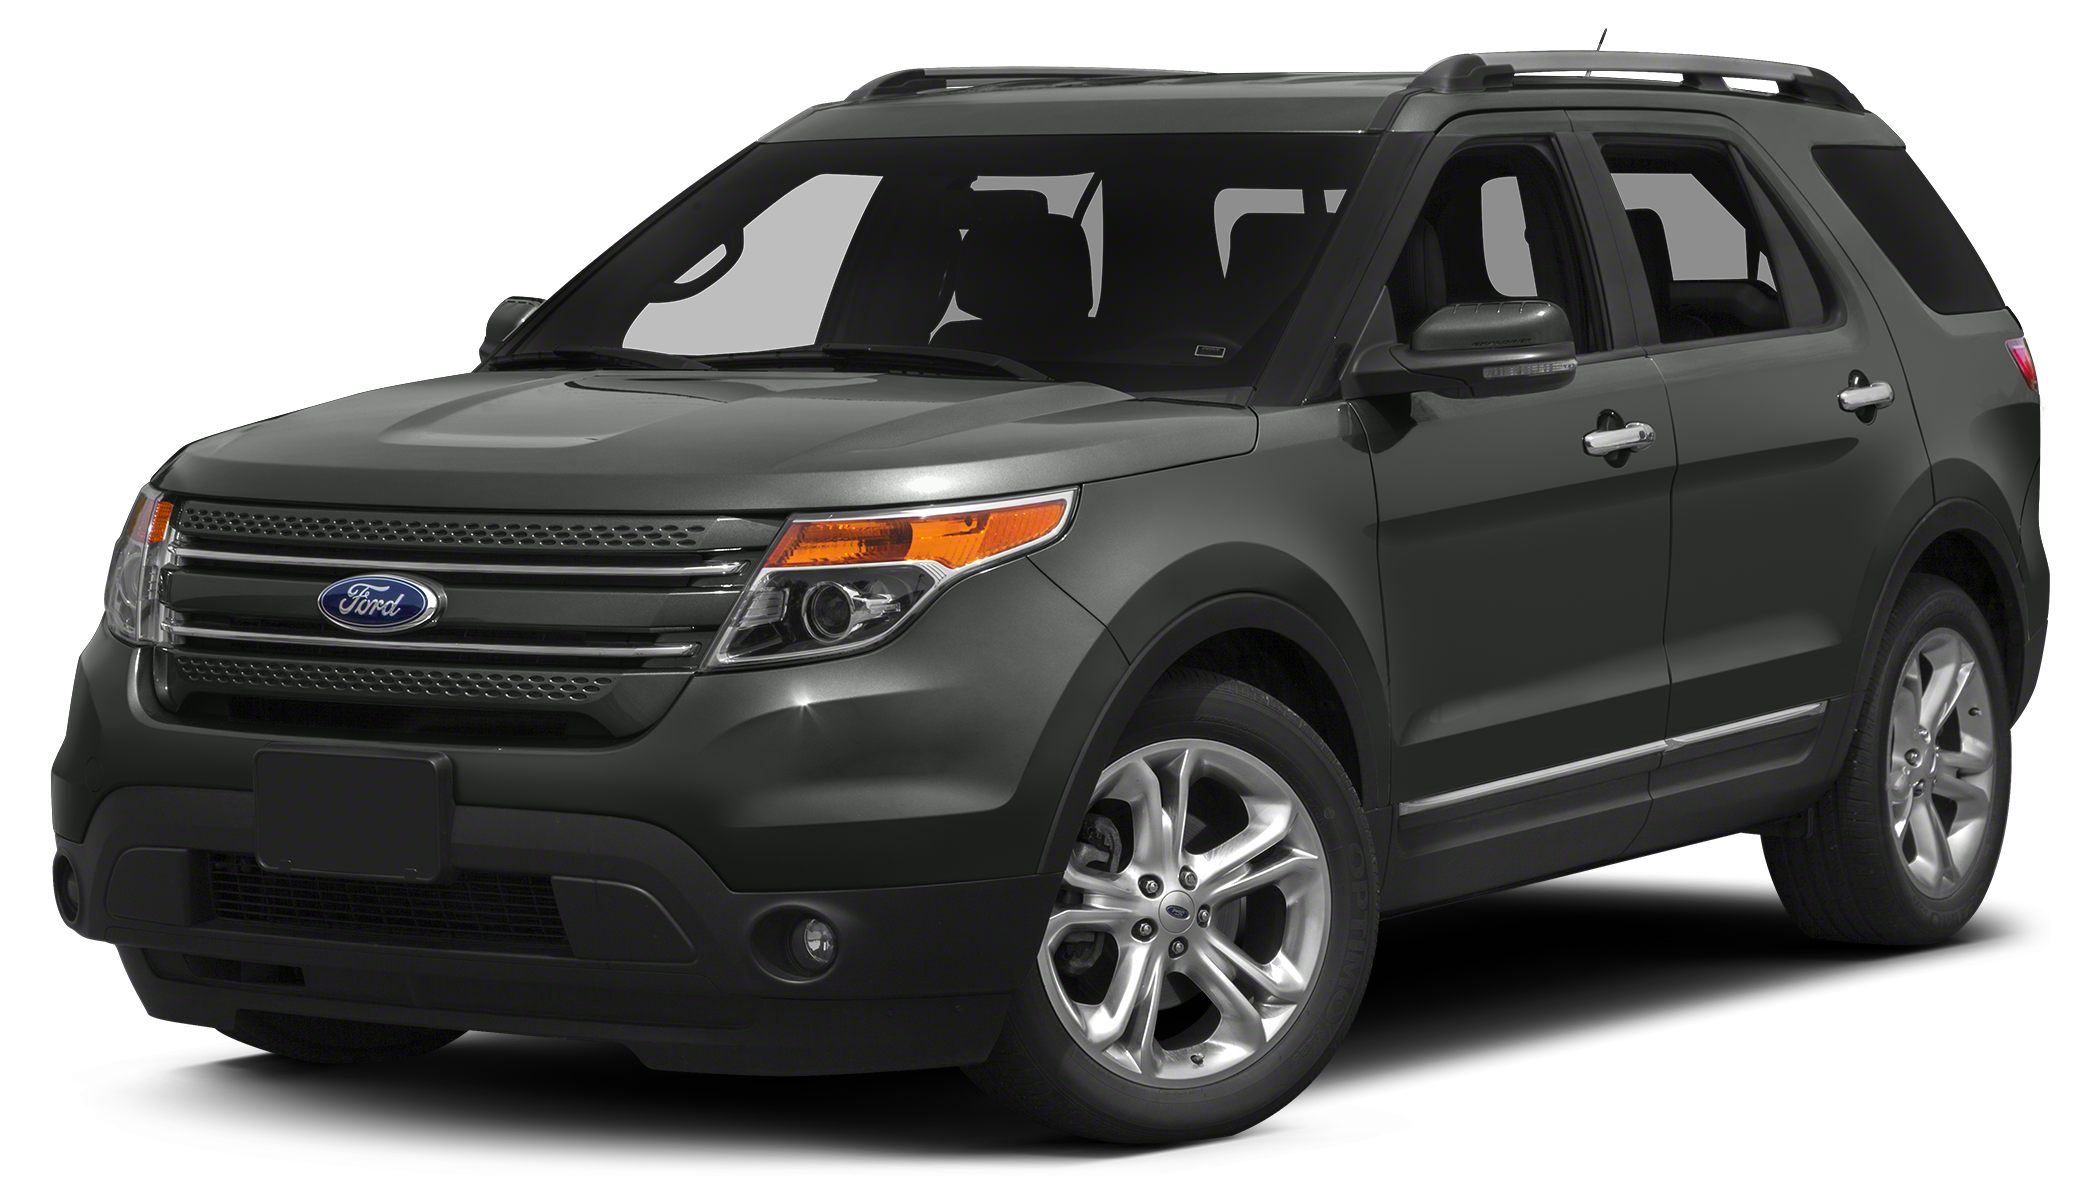 2015 Ford Explorer Limited 2015 Ford Explorer Limited in Dark Side Metallic Bluetooth for Phone a